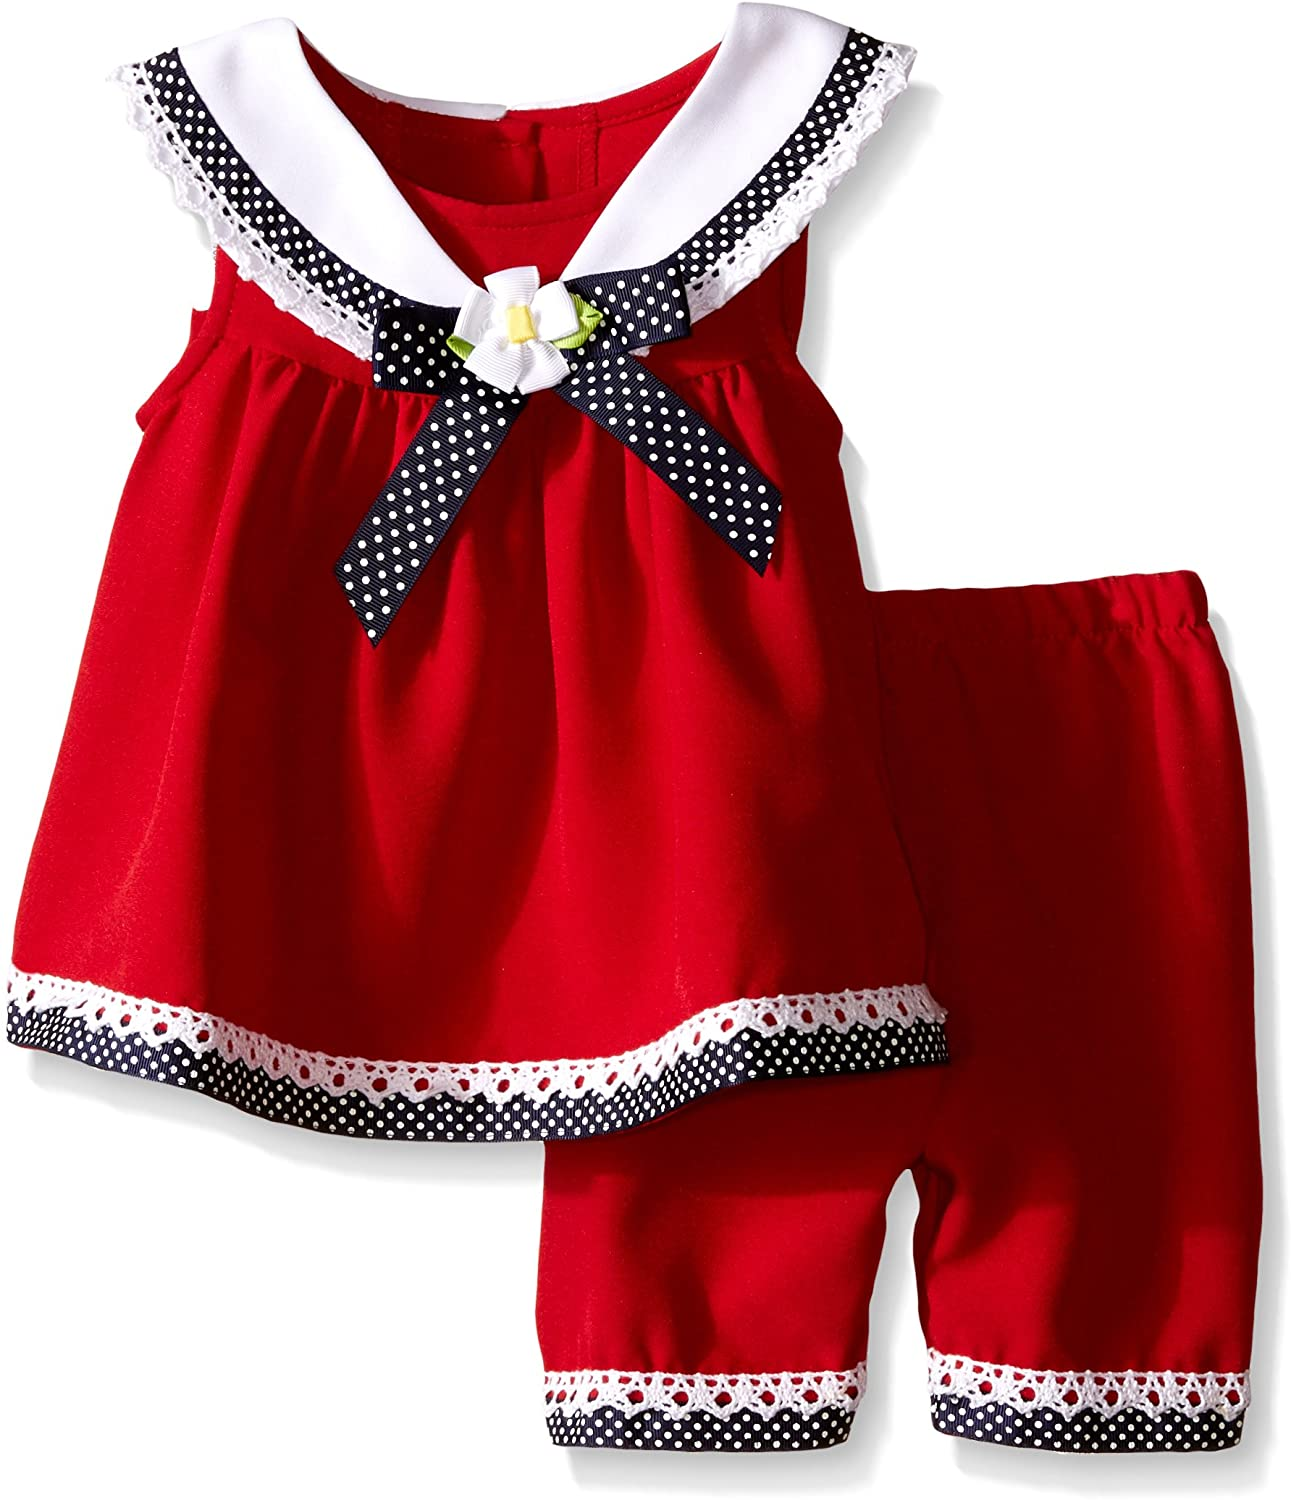 Bonnie Baby Baby Girls Sailor Playwear Set